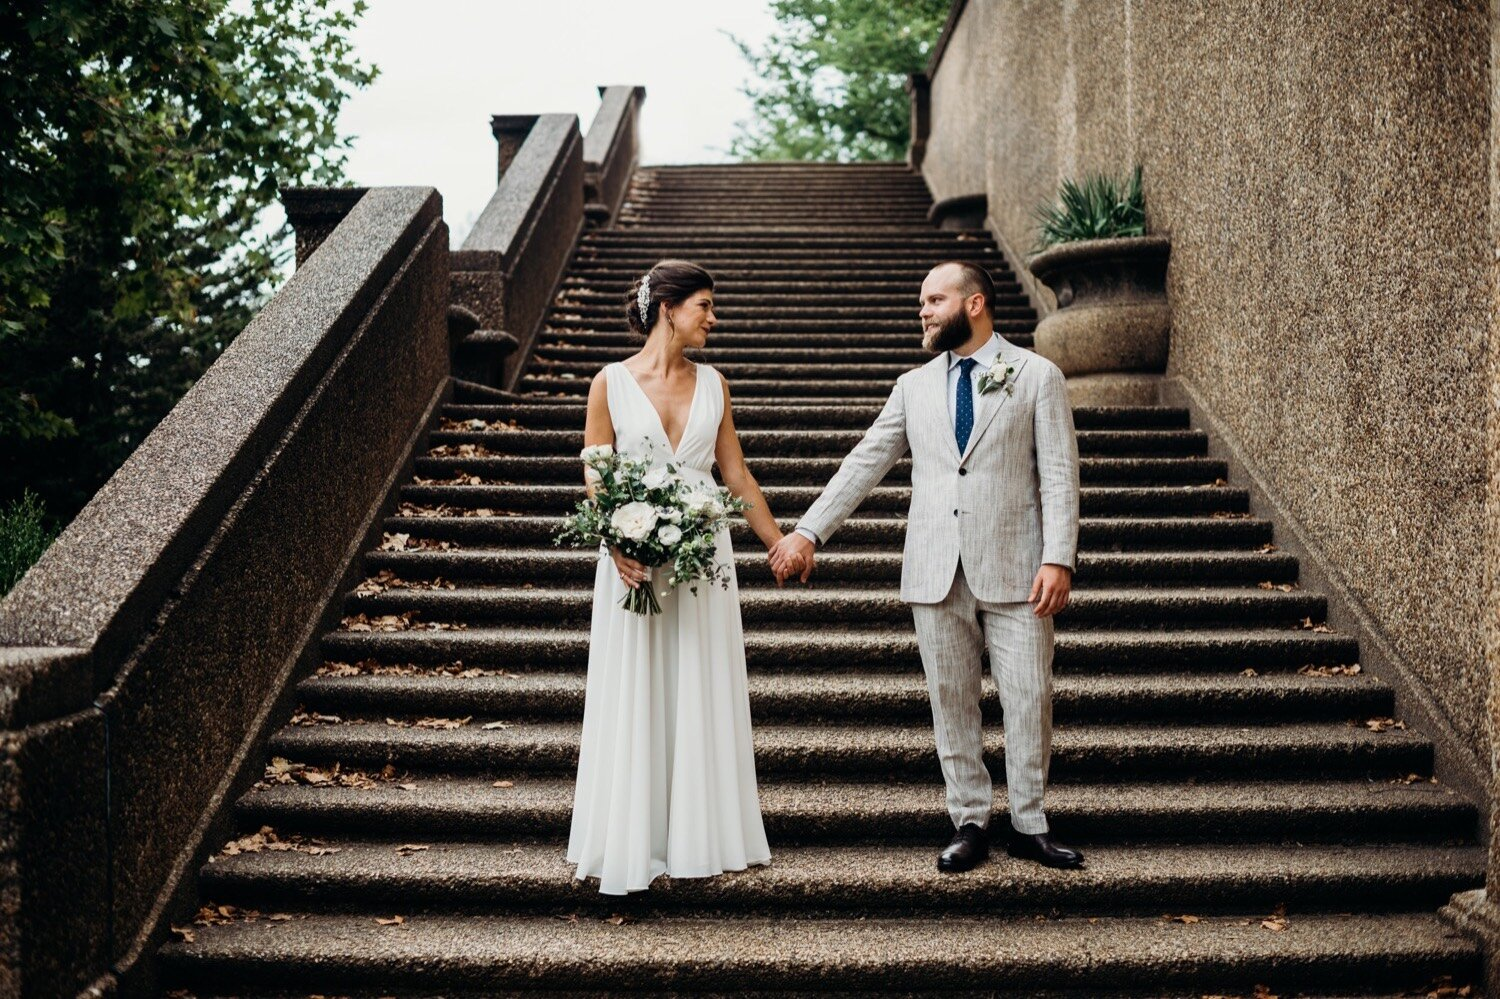 22_wedding_photographer_meridian_park_urban_dc_washington_hill.jpg